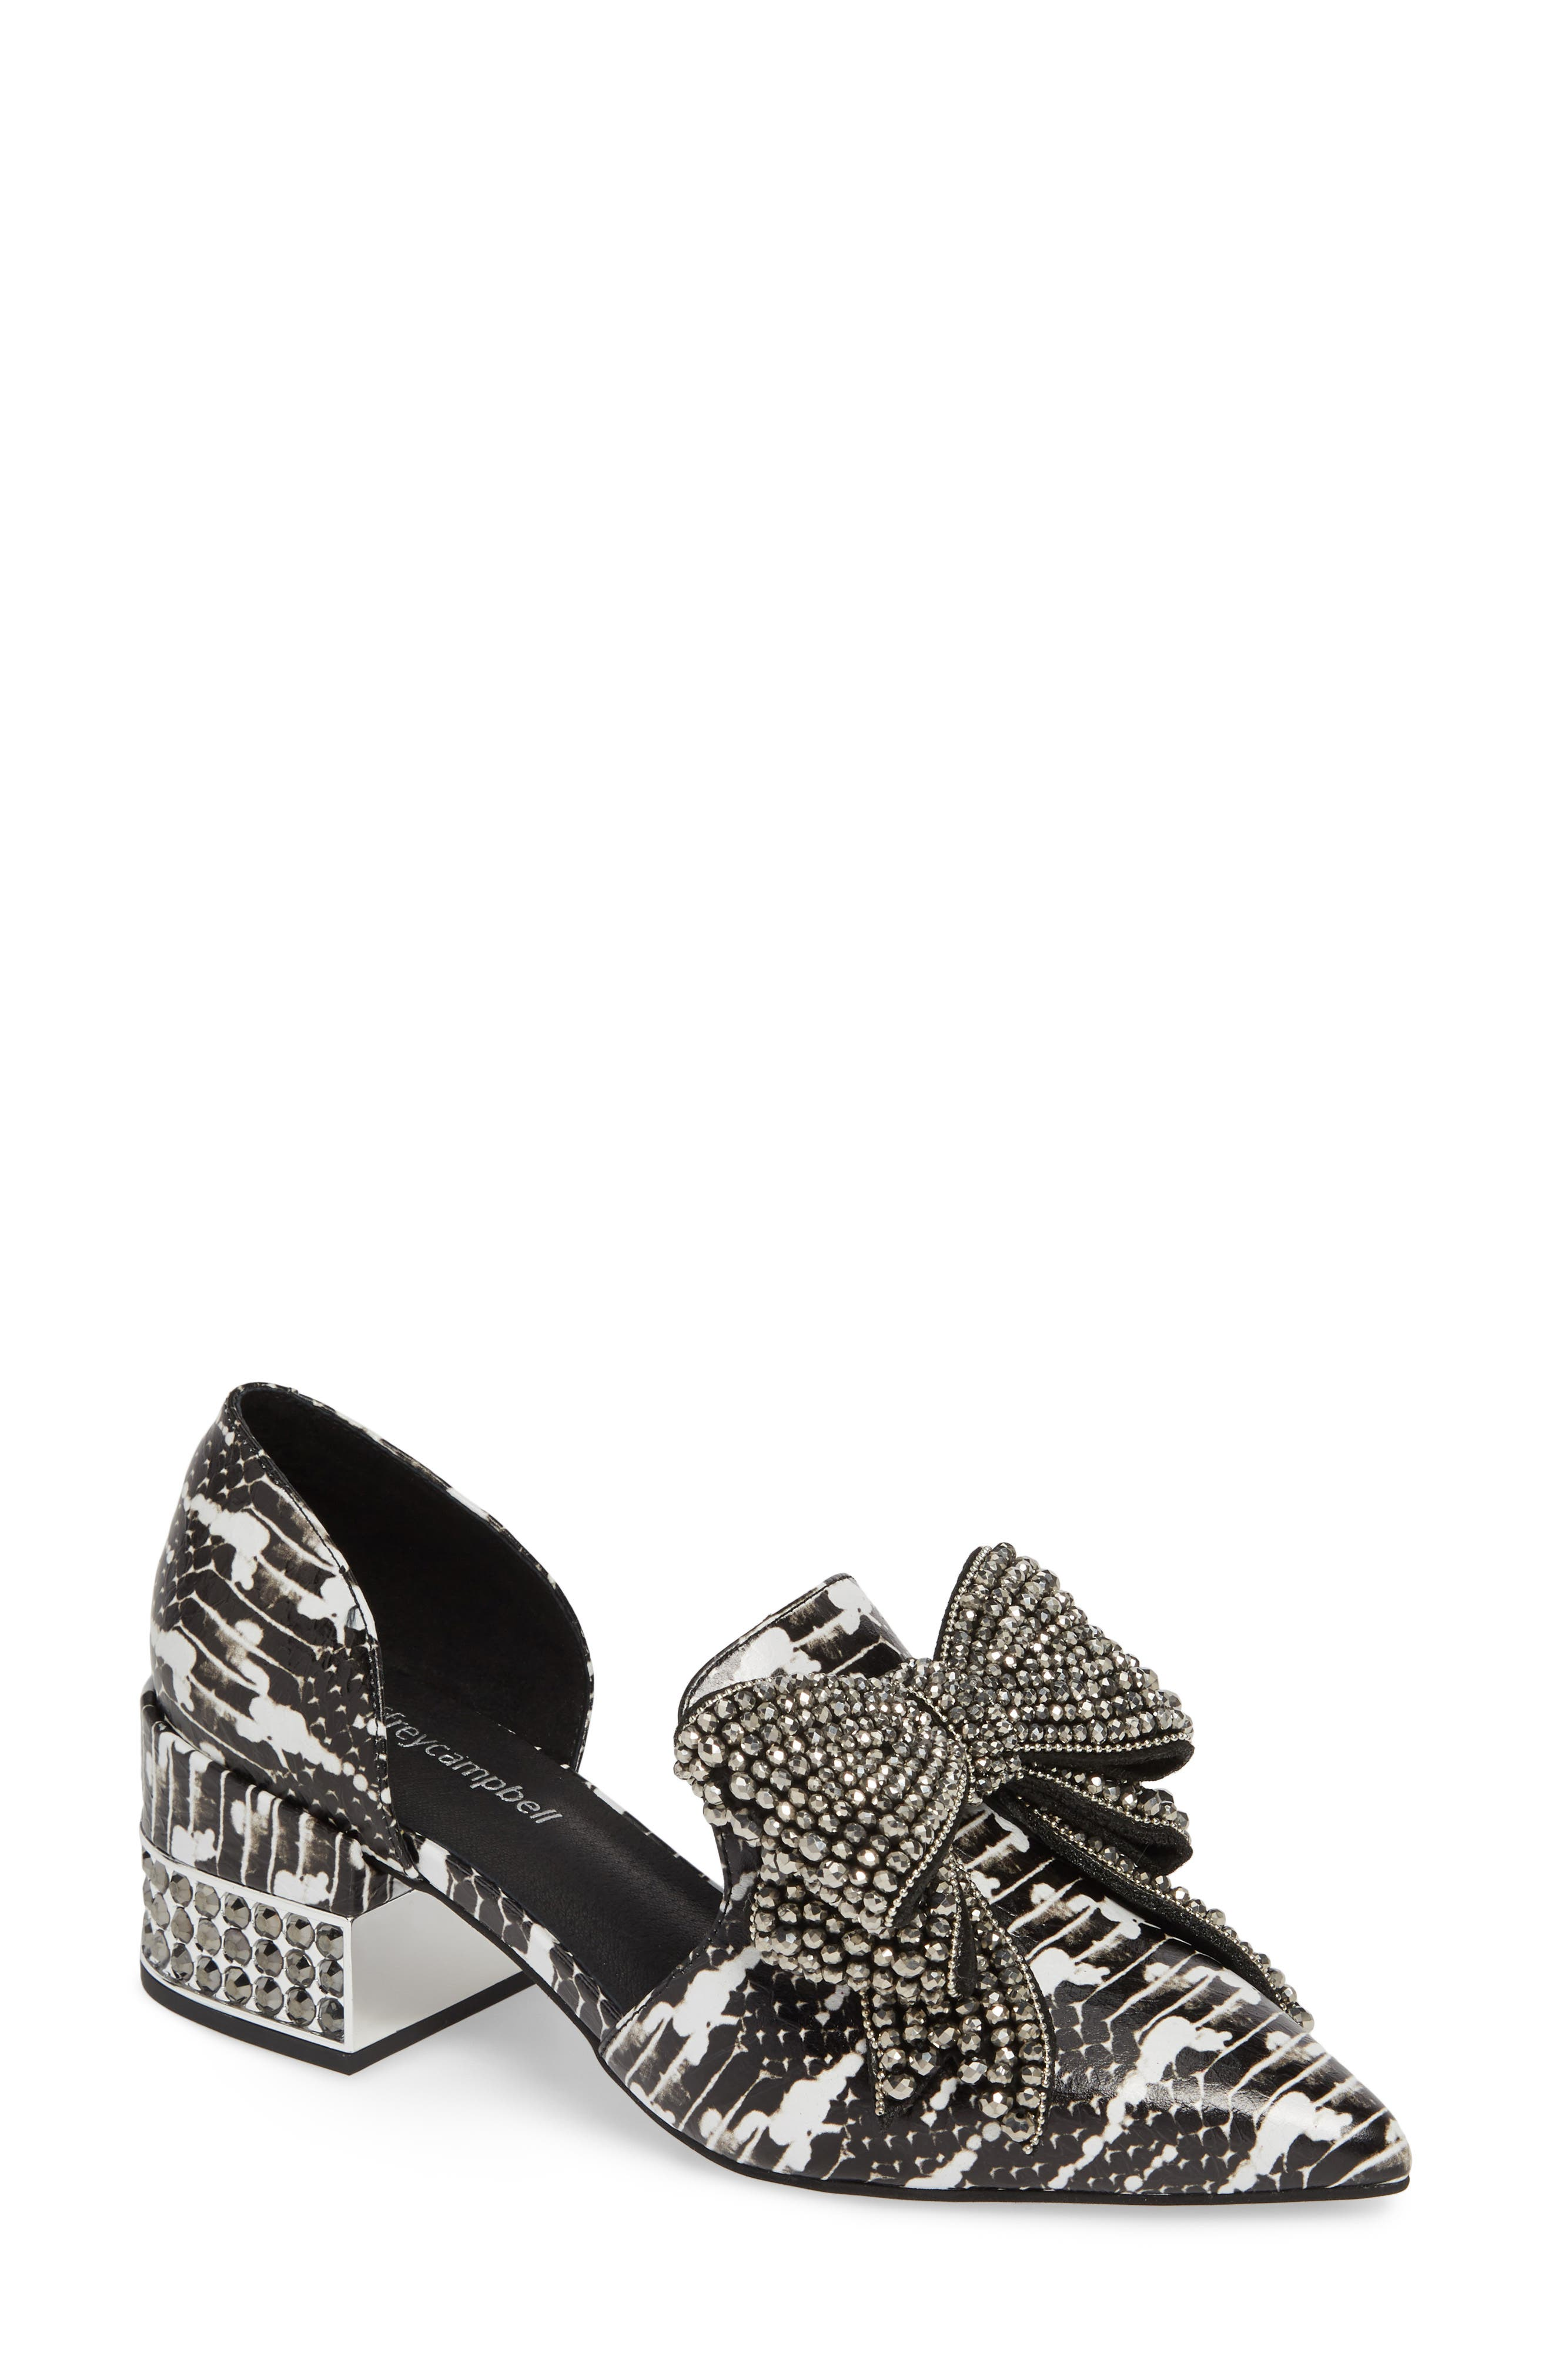 JEFFREY CAMPBELL, Valenti Embellished Bow Loafer, Main thumbnail 1, color, BLACK/WHITE/PEWTER